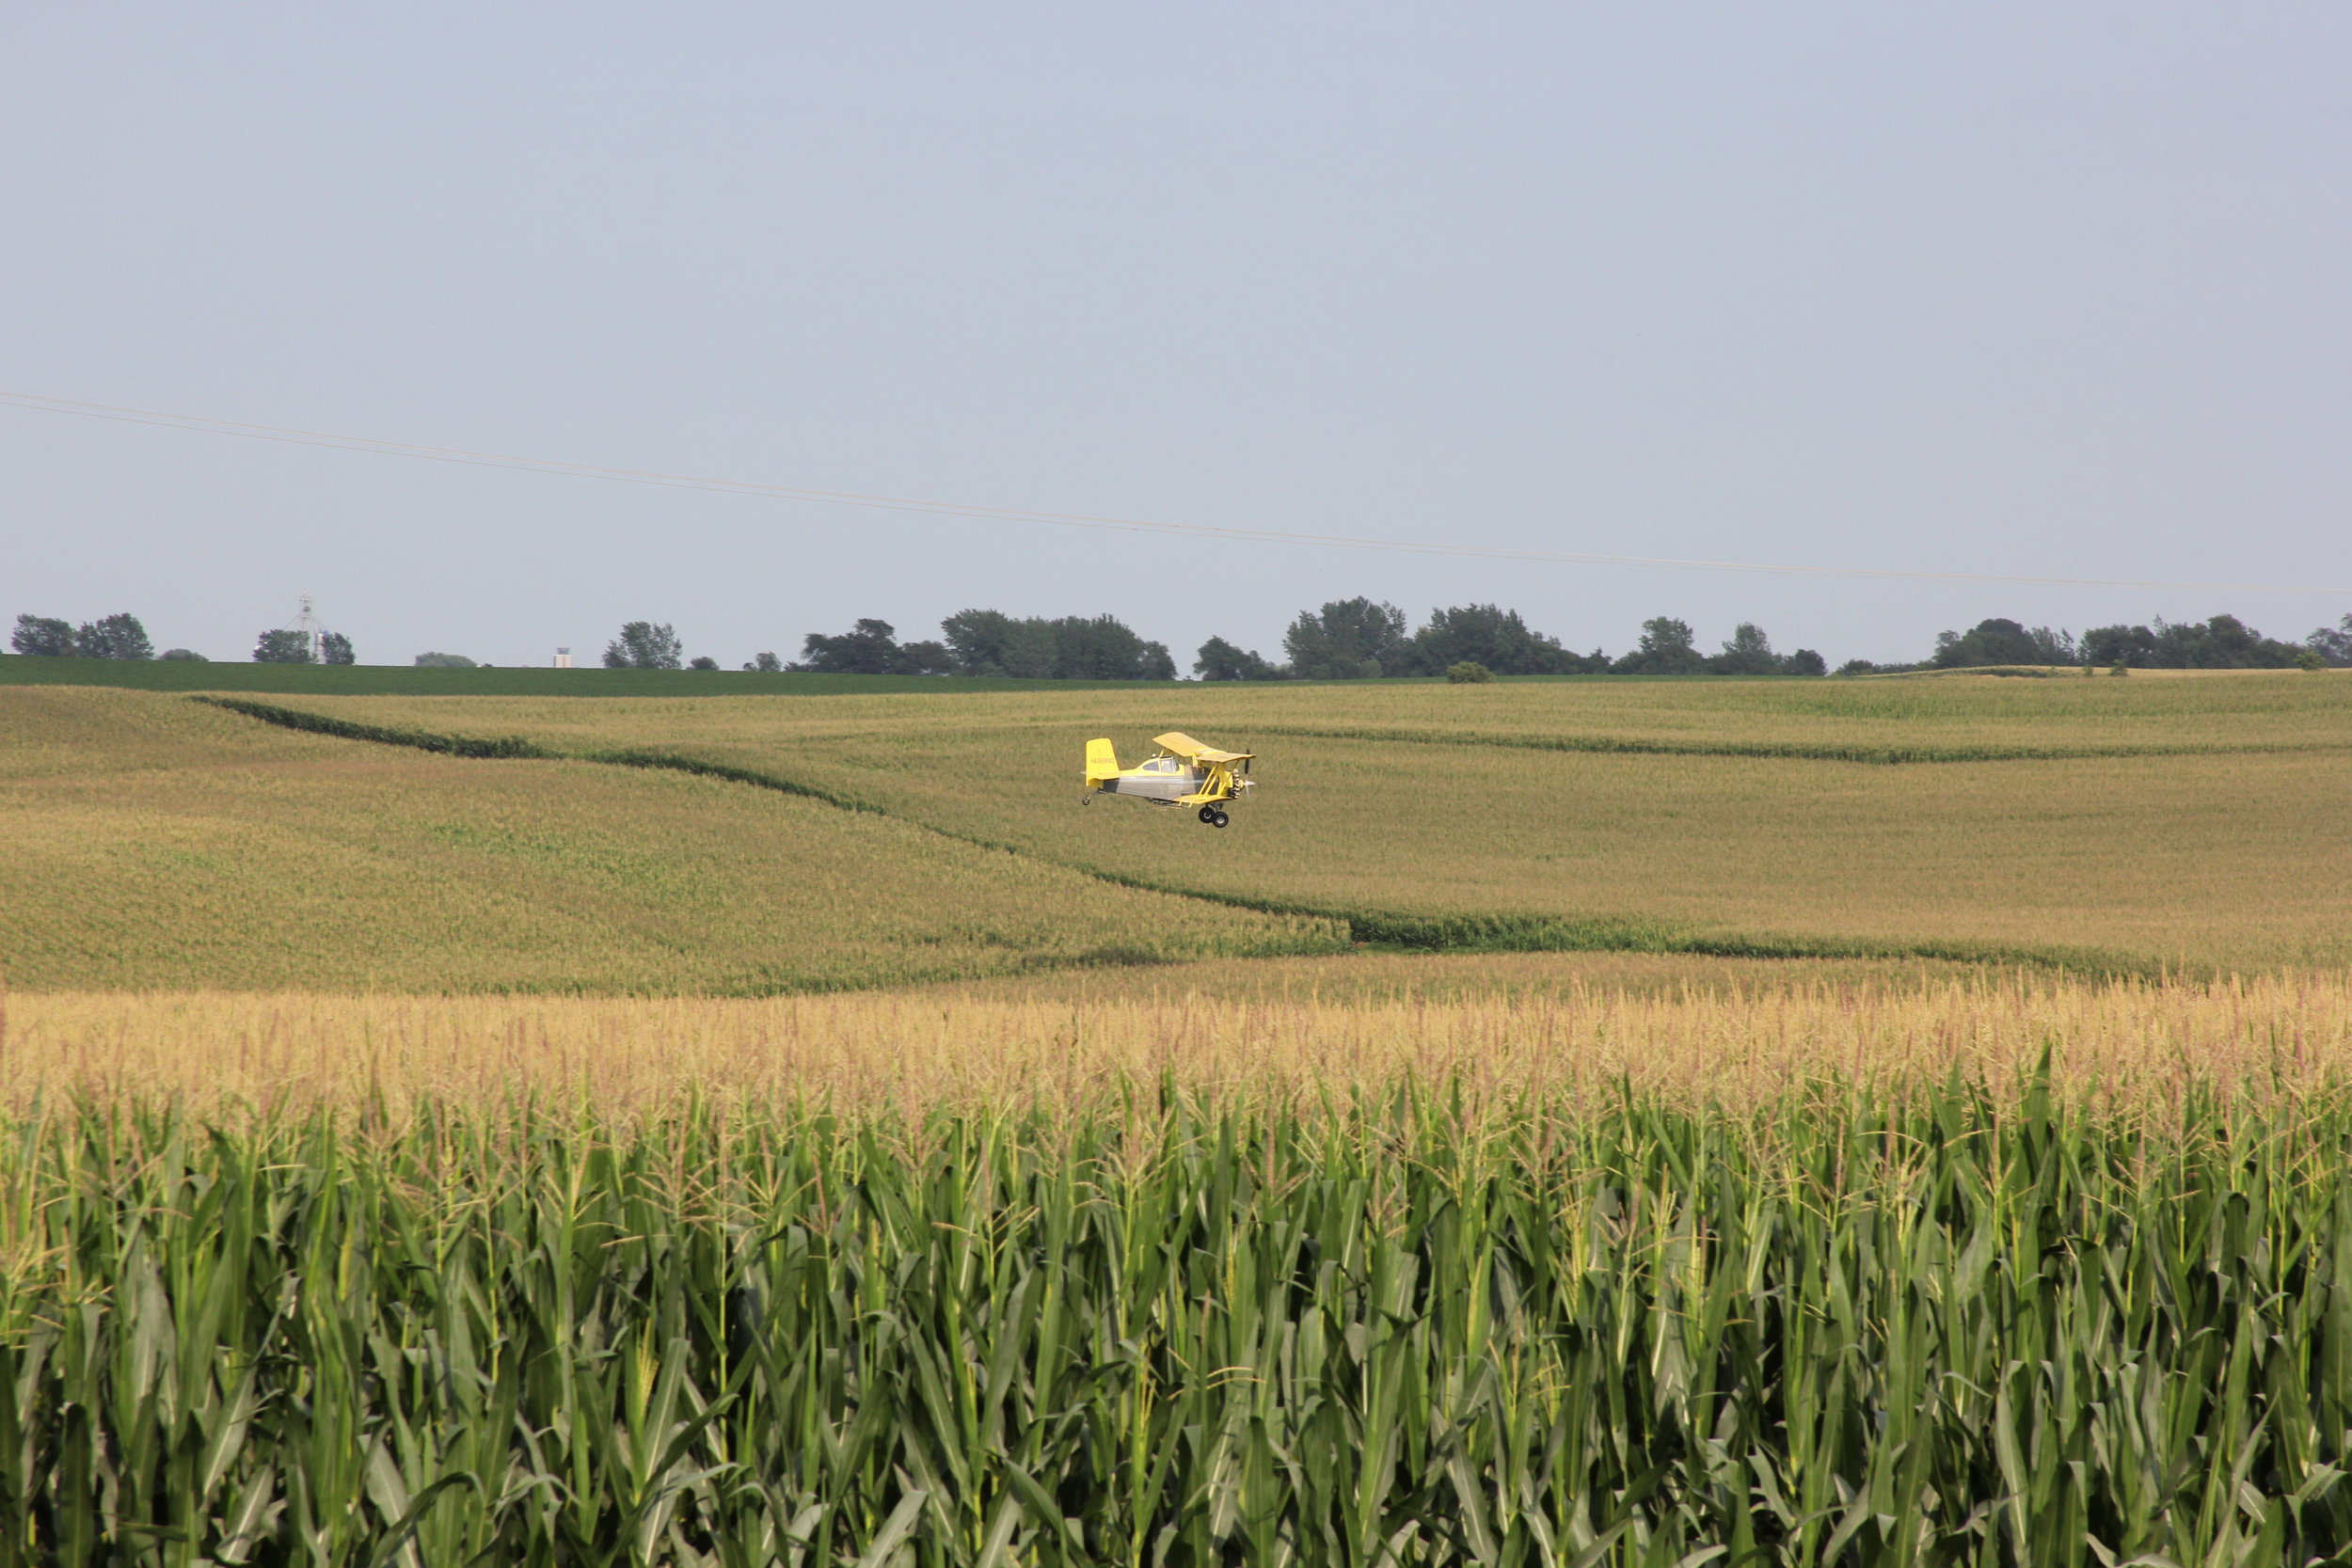 Image of crop duster applying pesticide to corn by Brad Covington